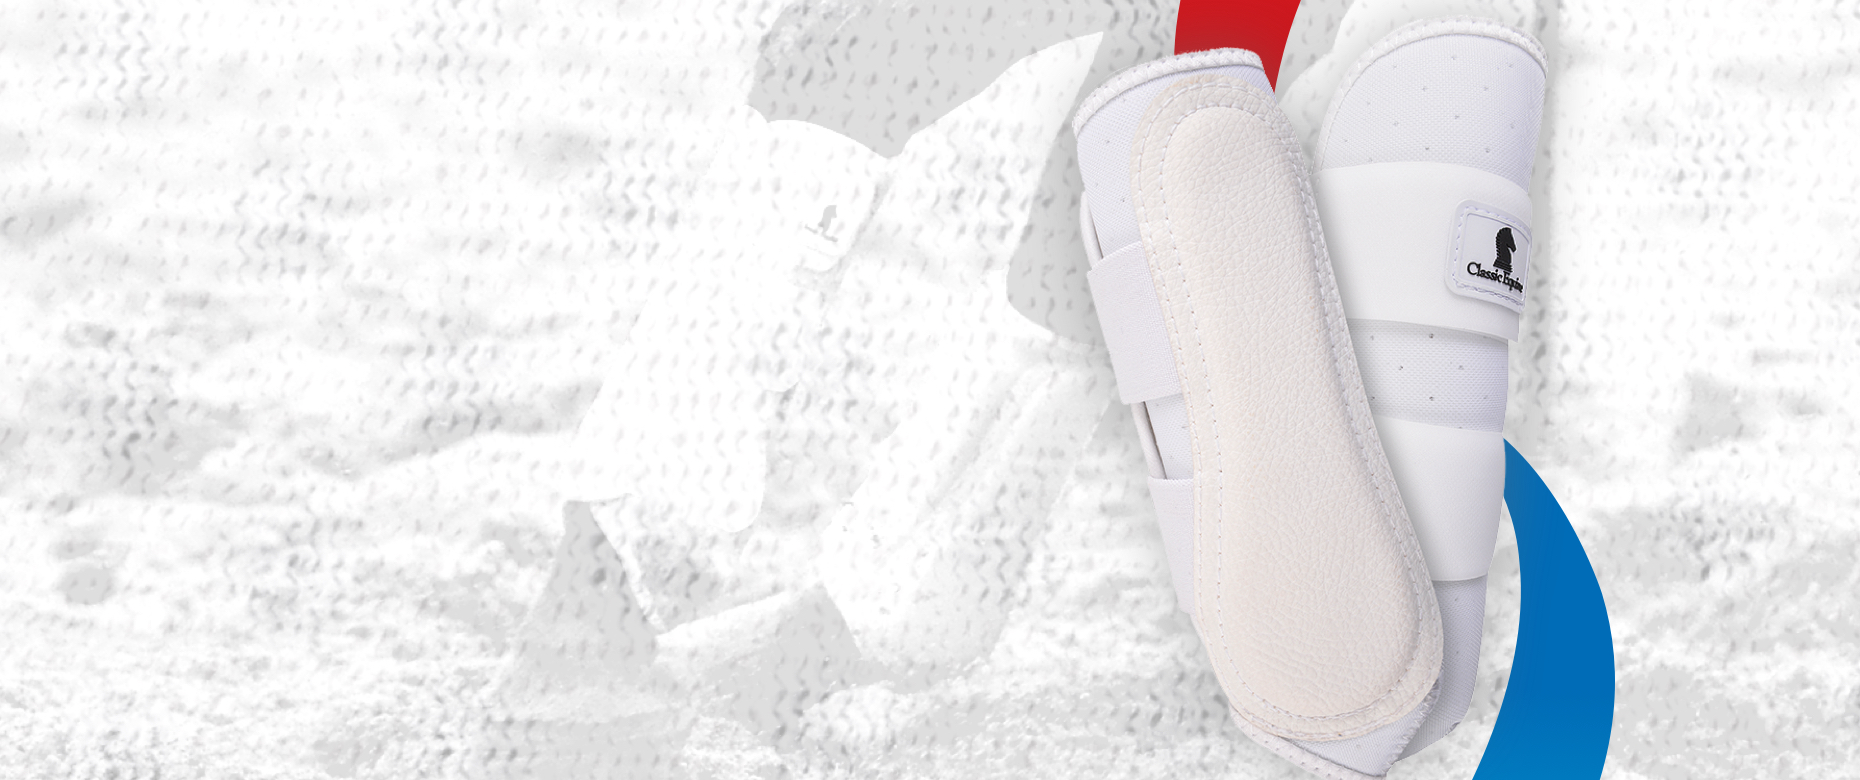 The Airwave boot is breathable and provides full support for practice or in the arena